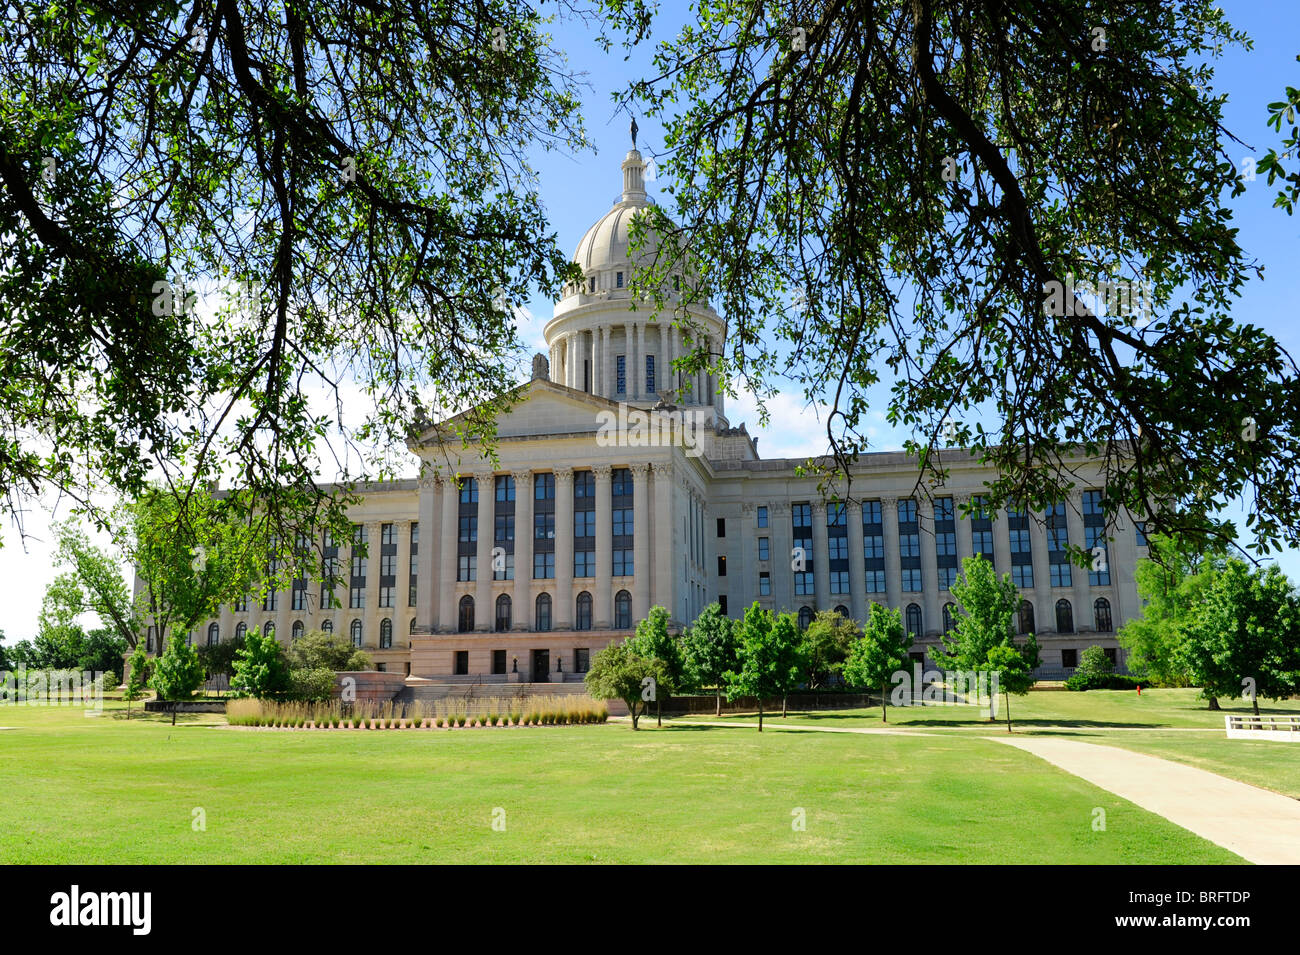 Oklahoma City Capitol Building Stock Photo